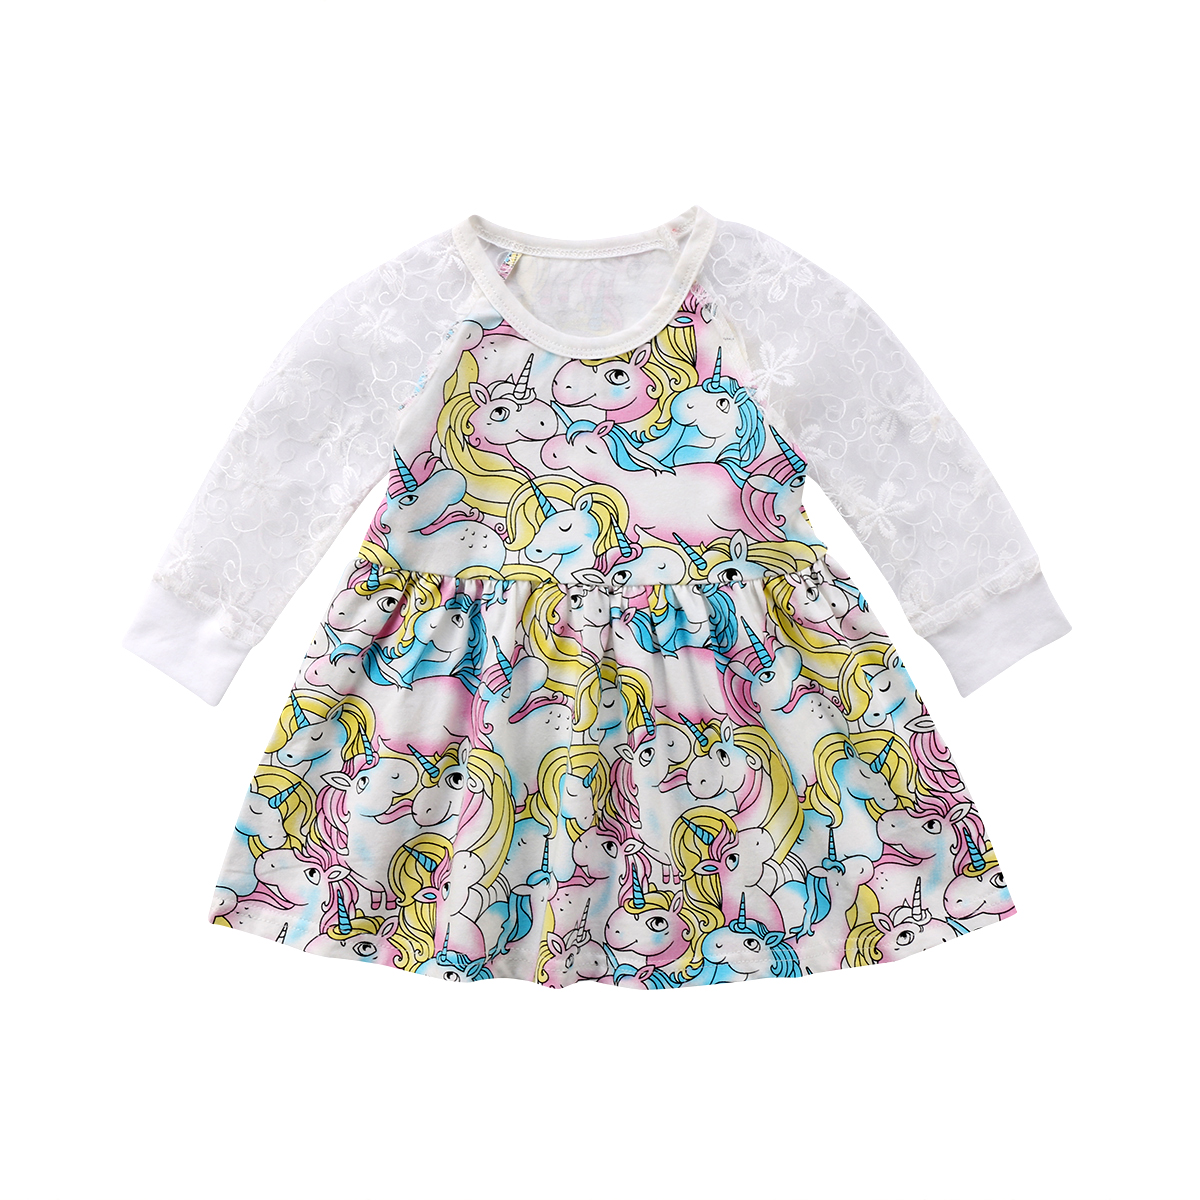 2018 Kids Baby Unicorn Girls Lace Long Sleeve Patchwork Tulle Tutu Dress Princess Party Wedding Gown Cute Clothing Custom